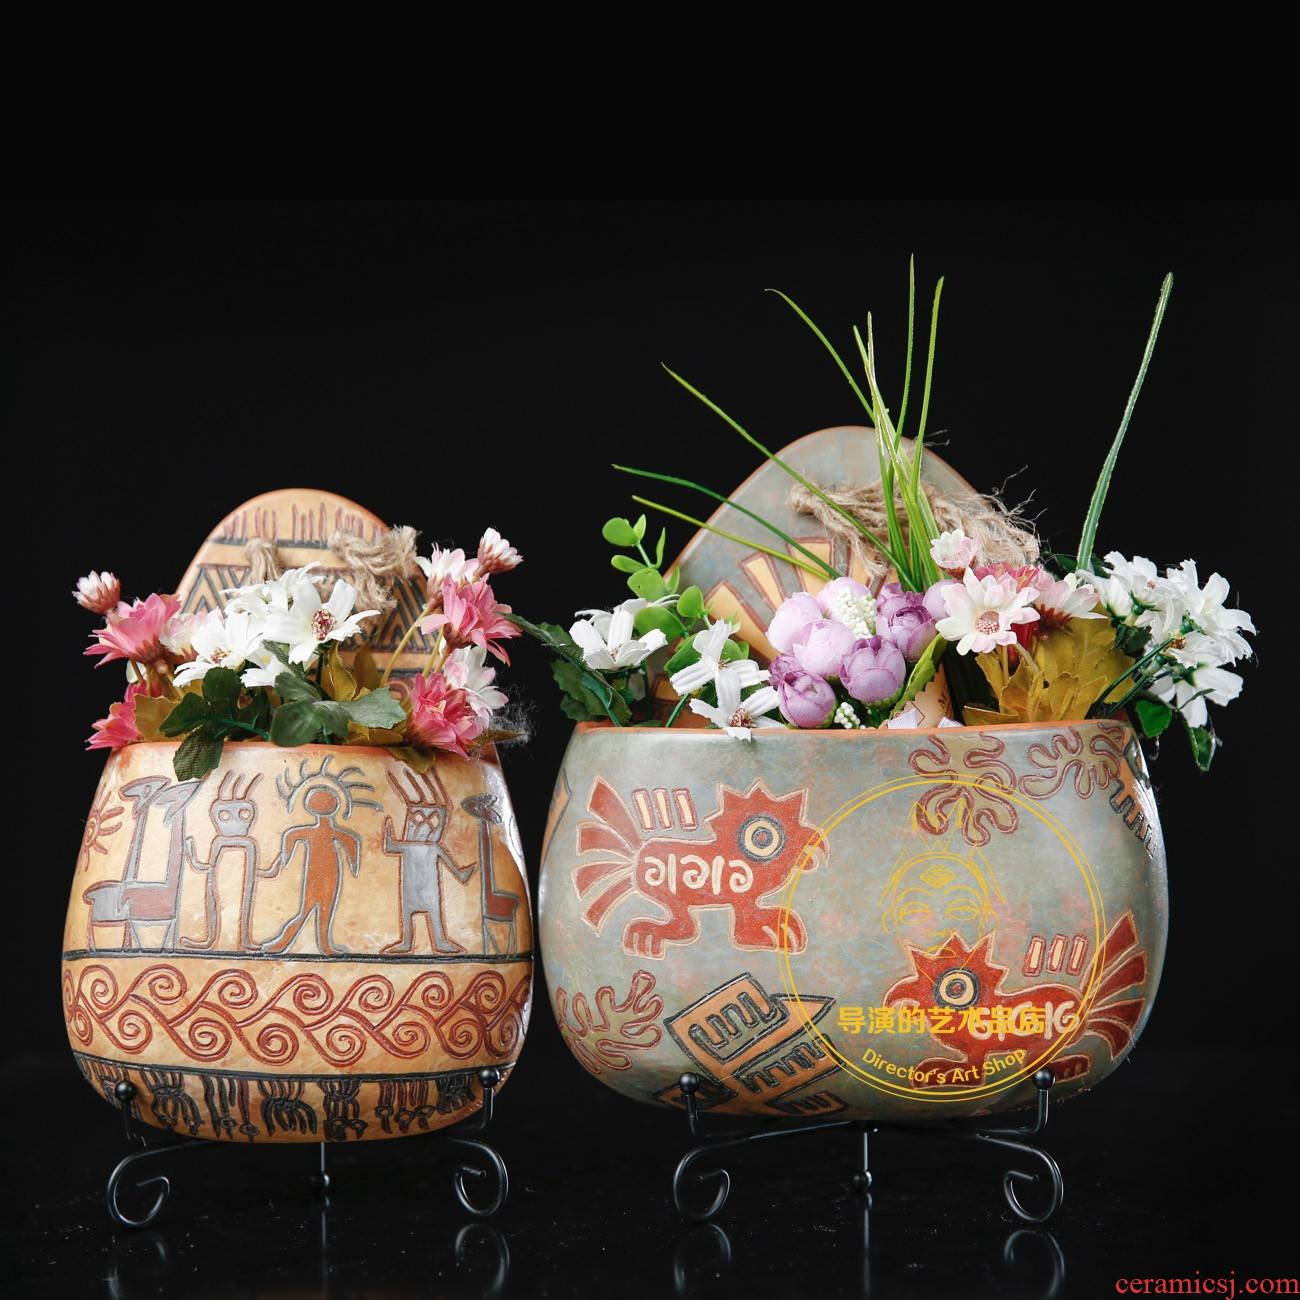 Maya Indian culture in South America Peru ceramics flower basket vase is placed pendant checking soft decoration